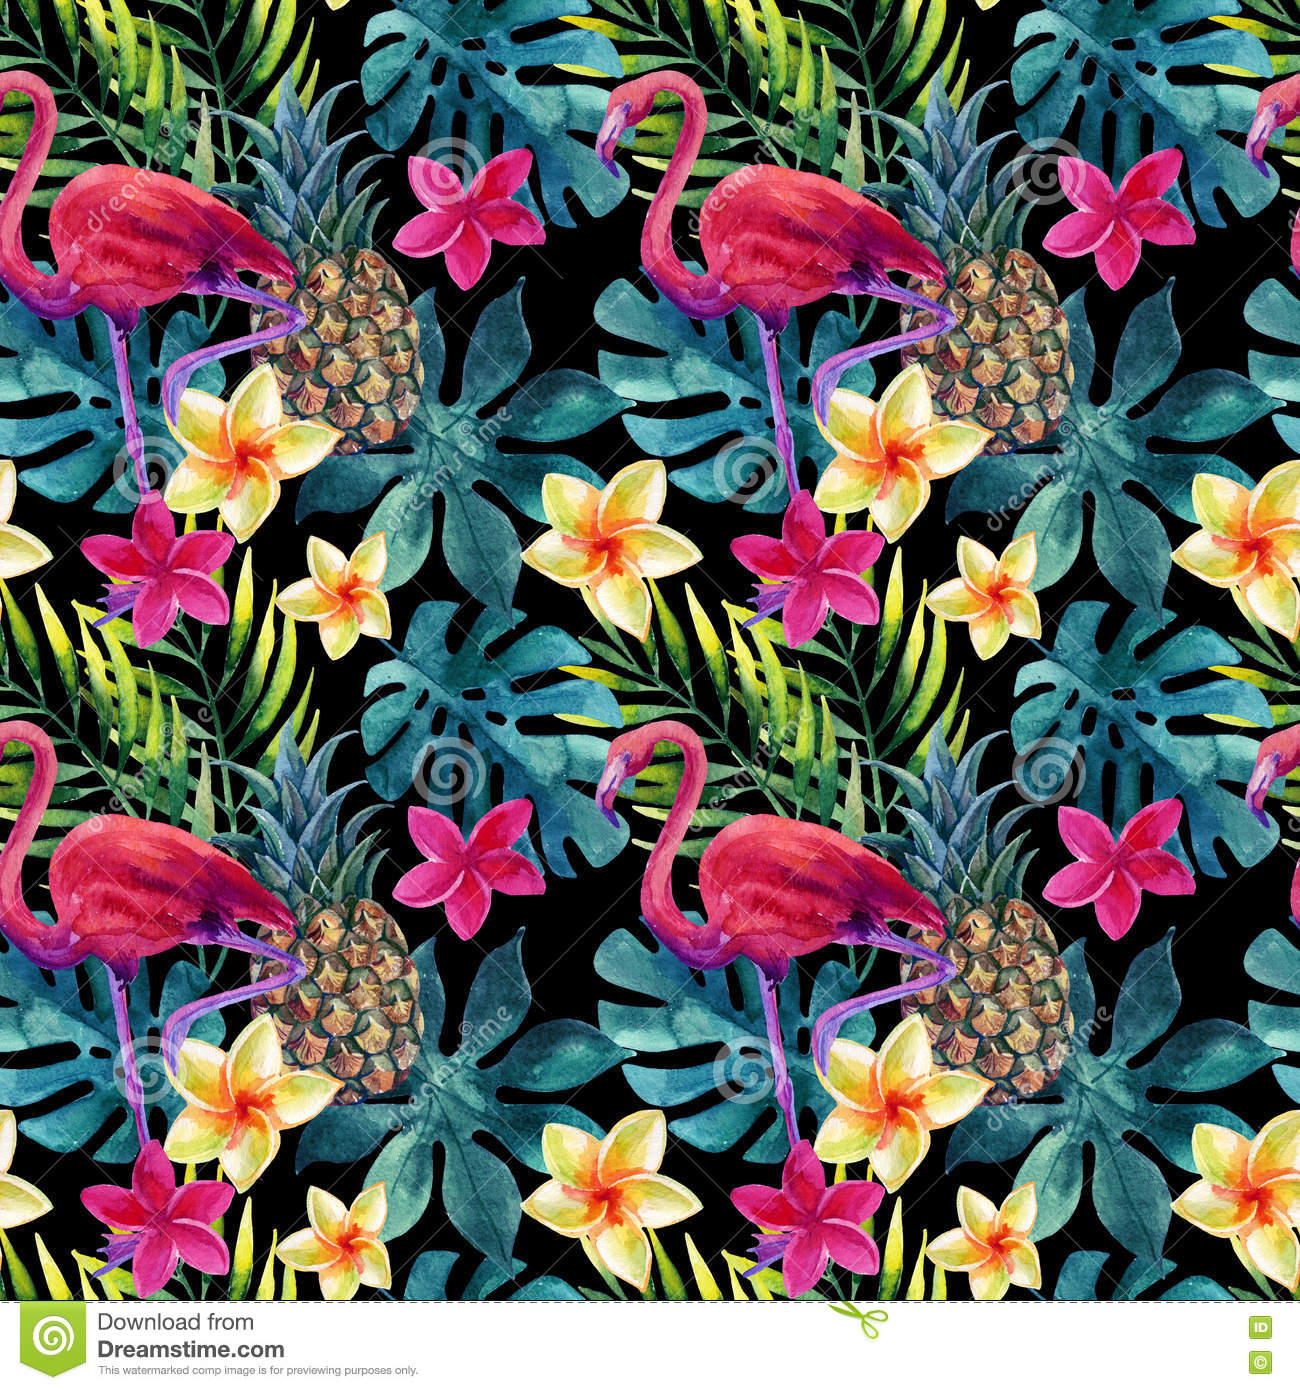 Tropical Watercolor Pineapple Flowers And Leaves With Shadows Stock Illustration Image 71217222